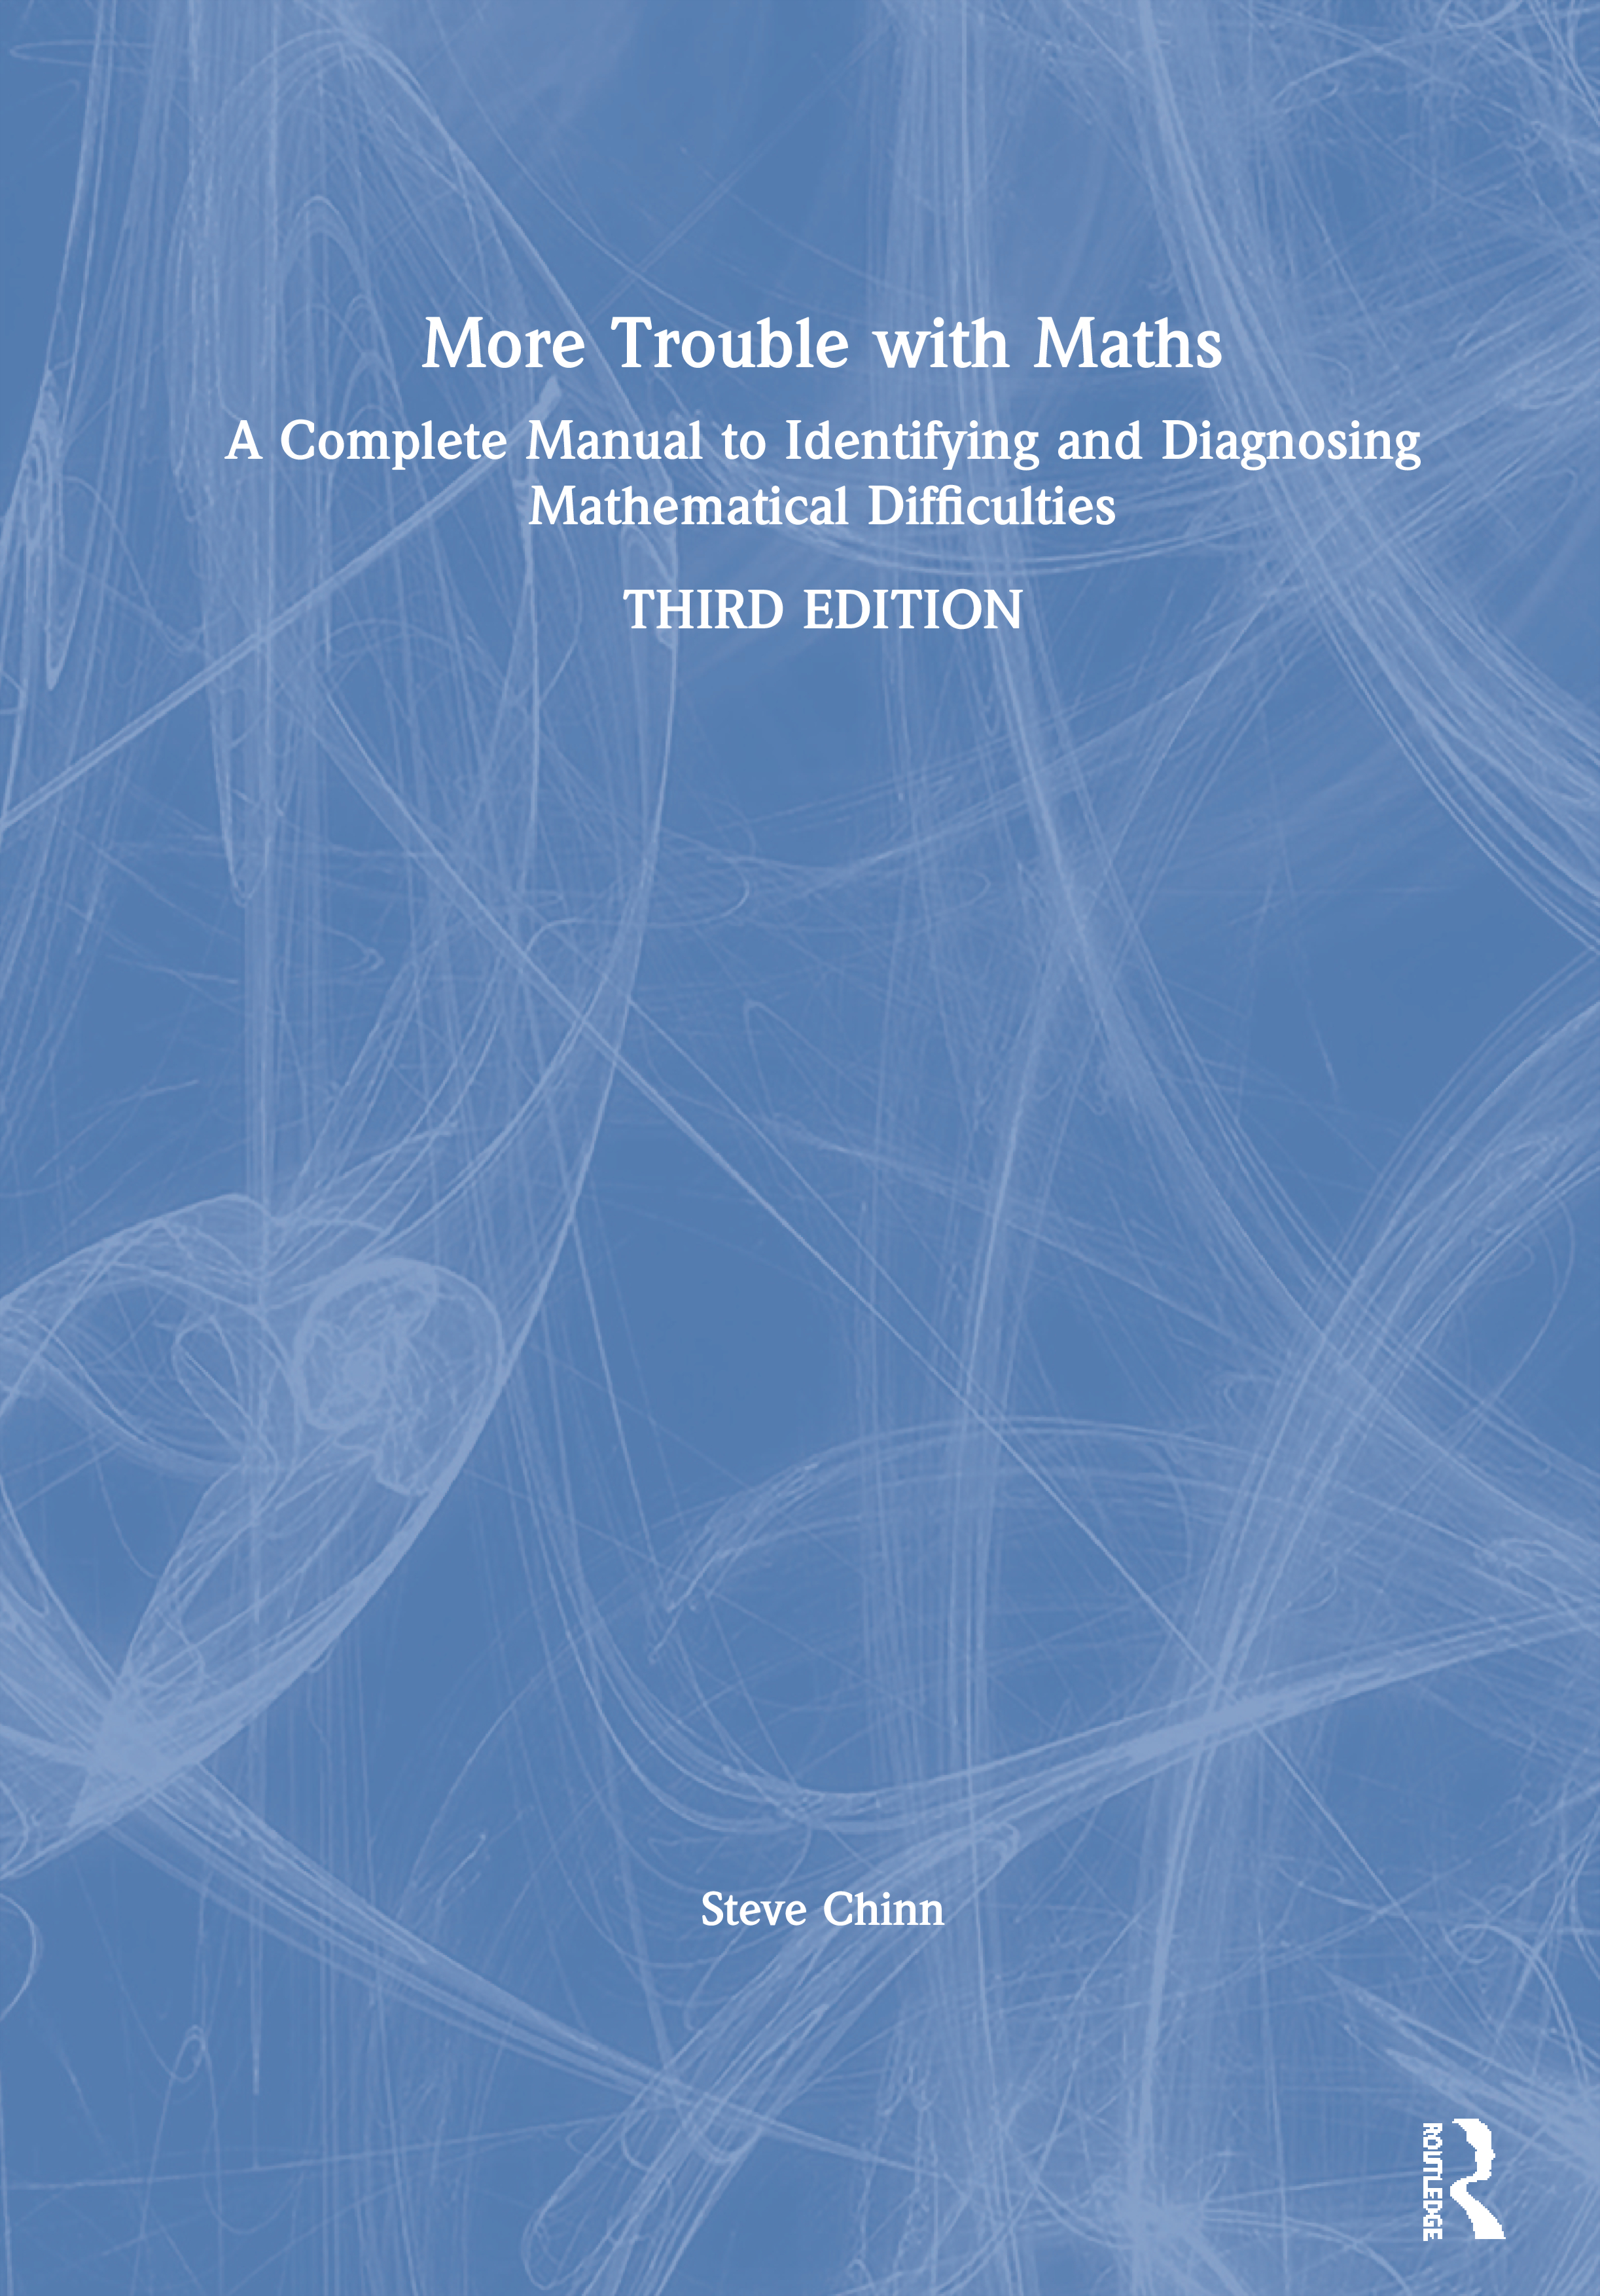 More Trouble with Maths: A Complete Manual to Identifying and Diagnosing Mathematical Difficulties book cover